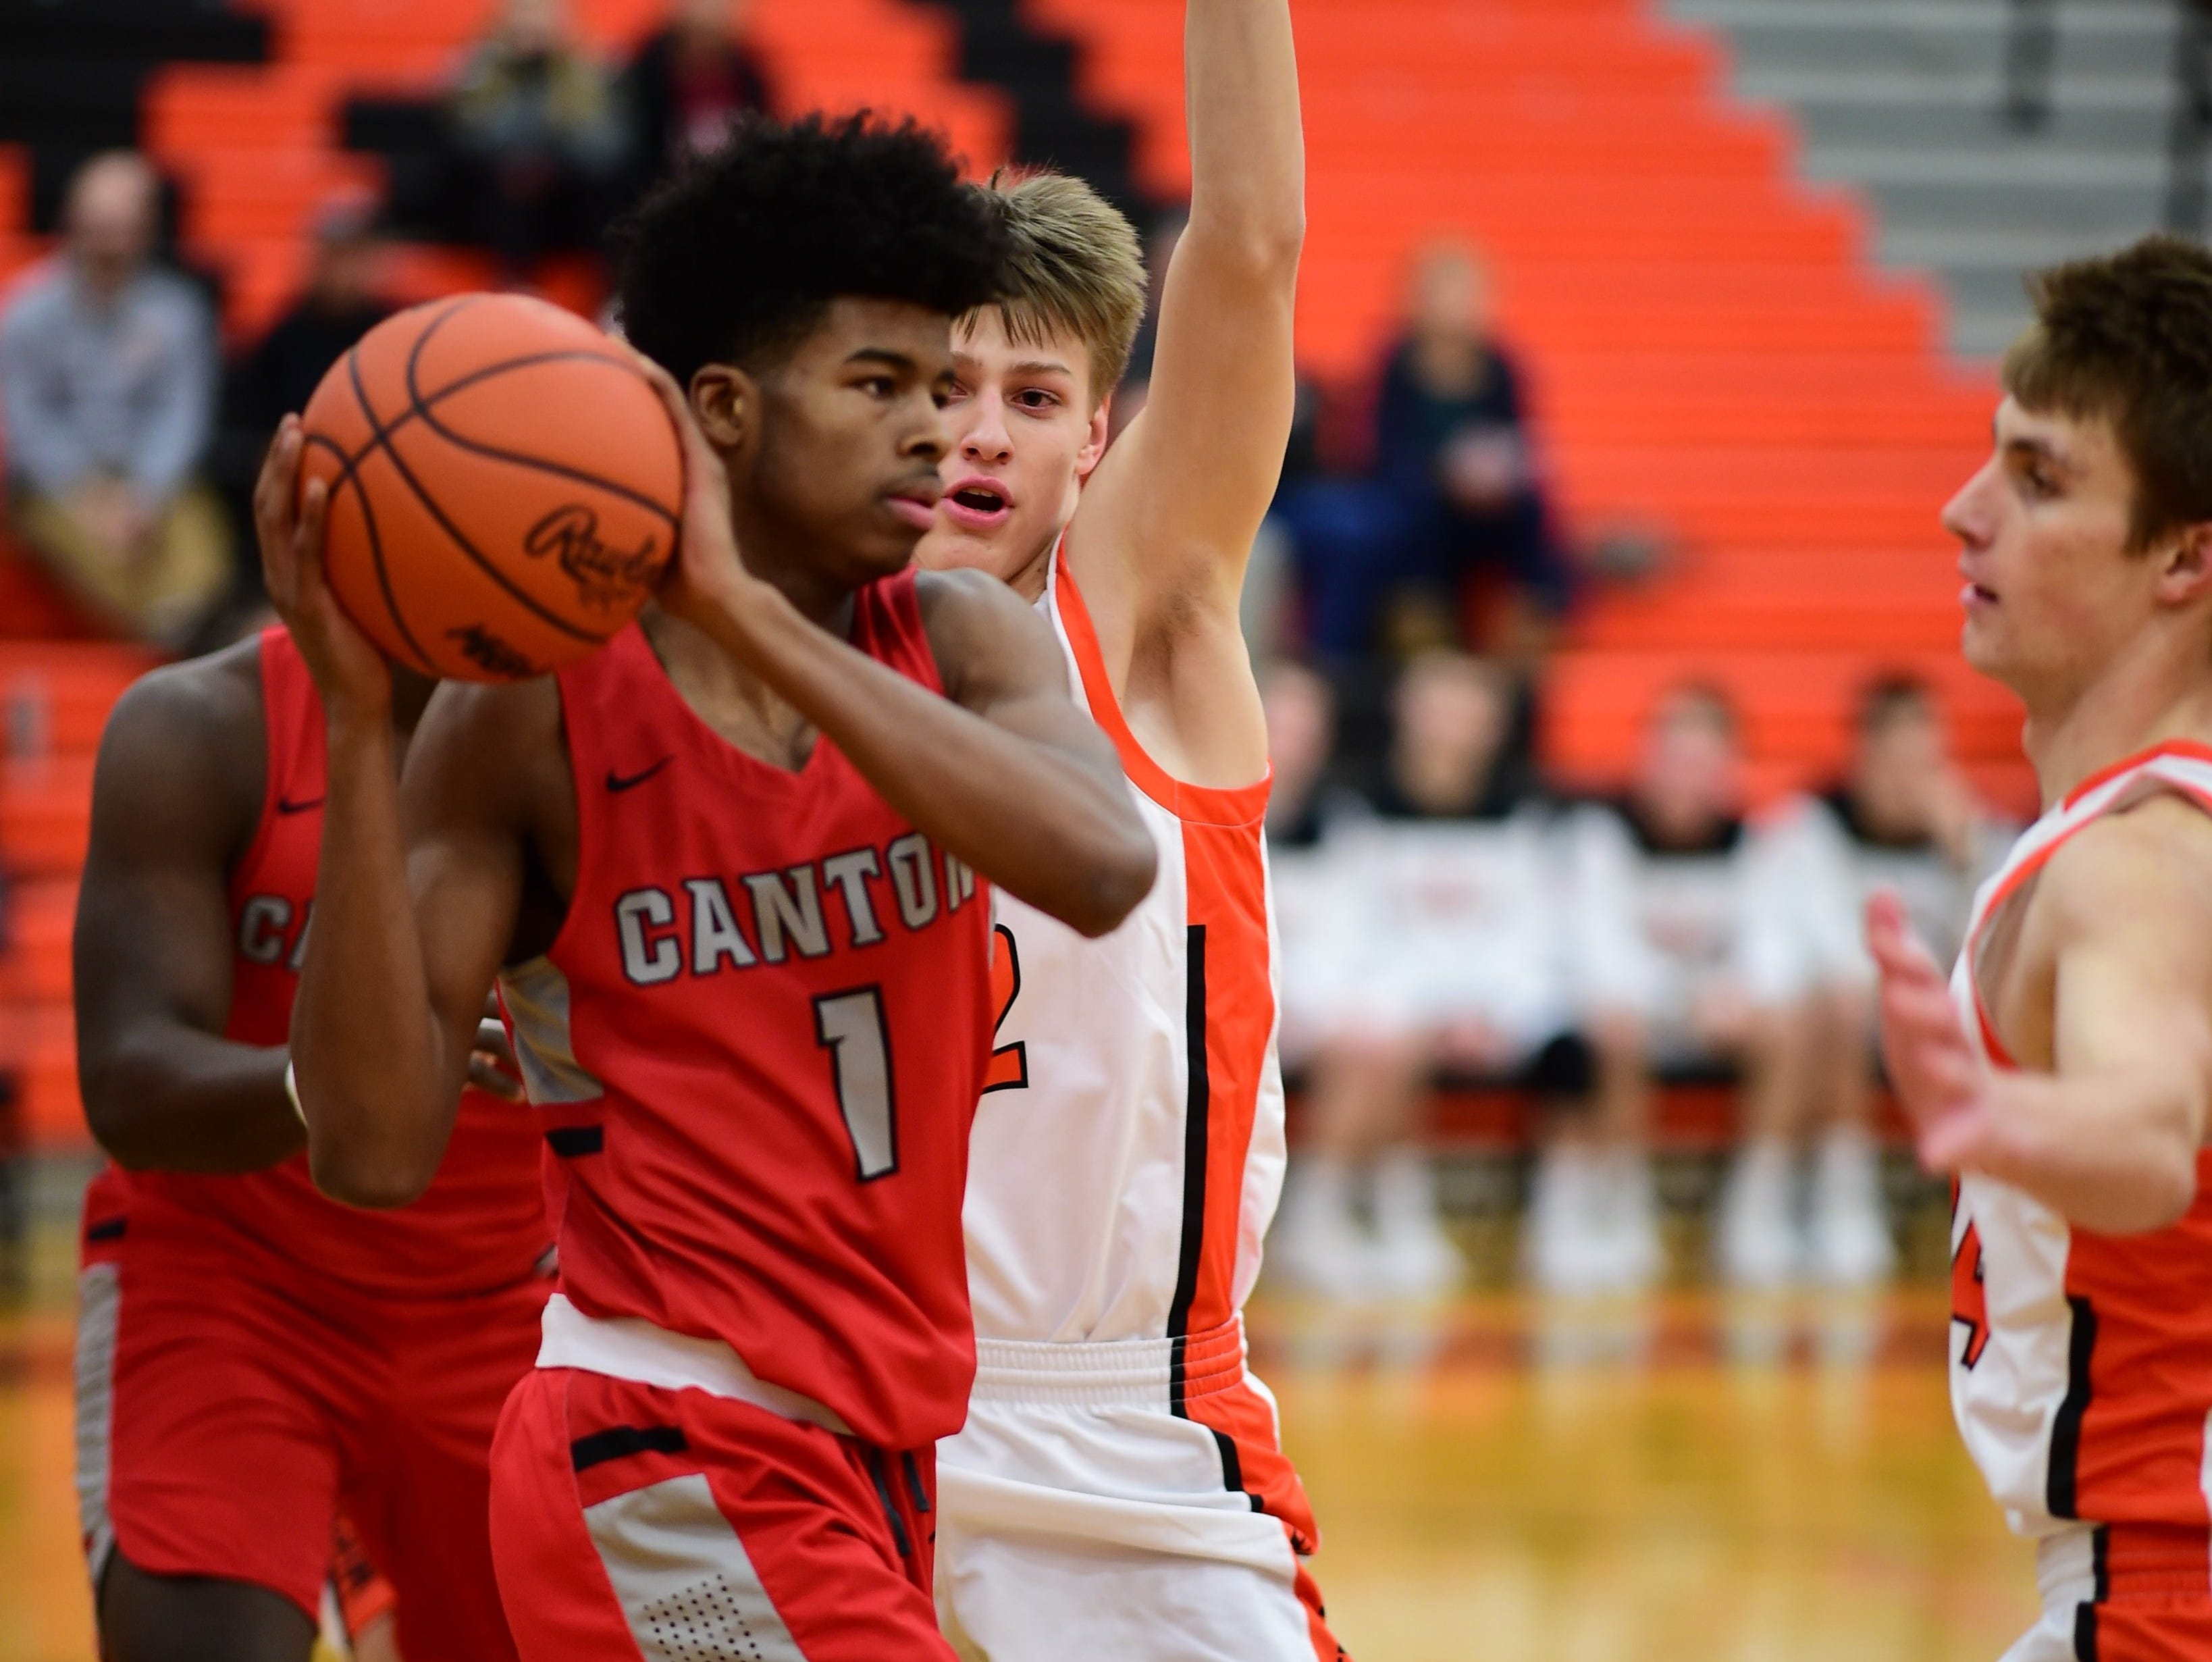 Looking to find an open teammate is Canton's Kendall Perkins (1).